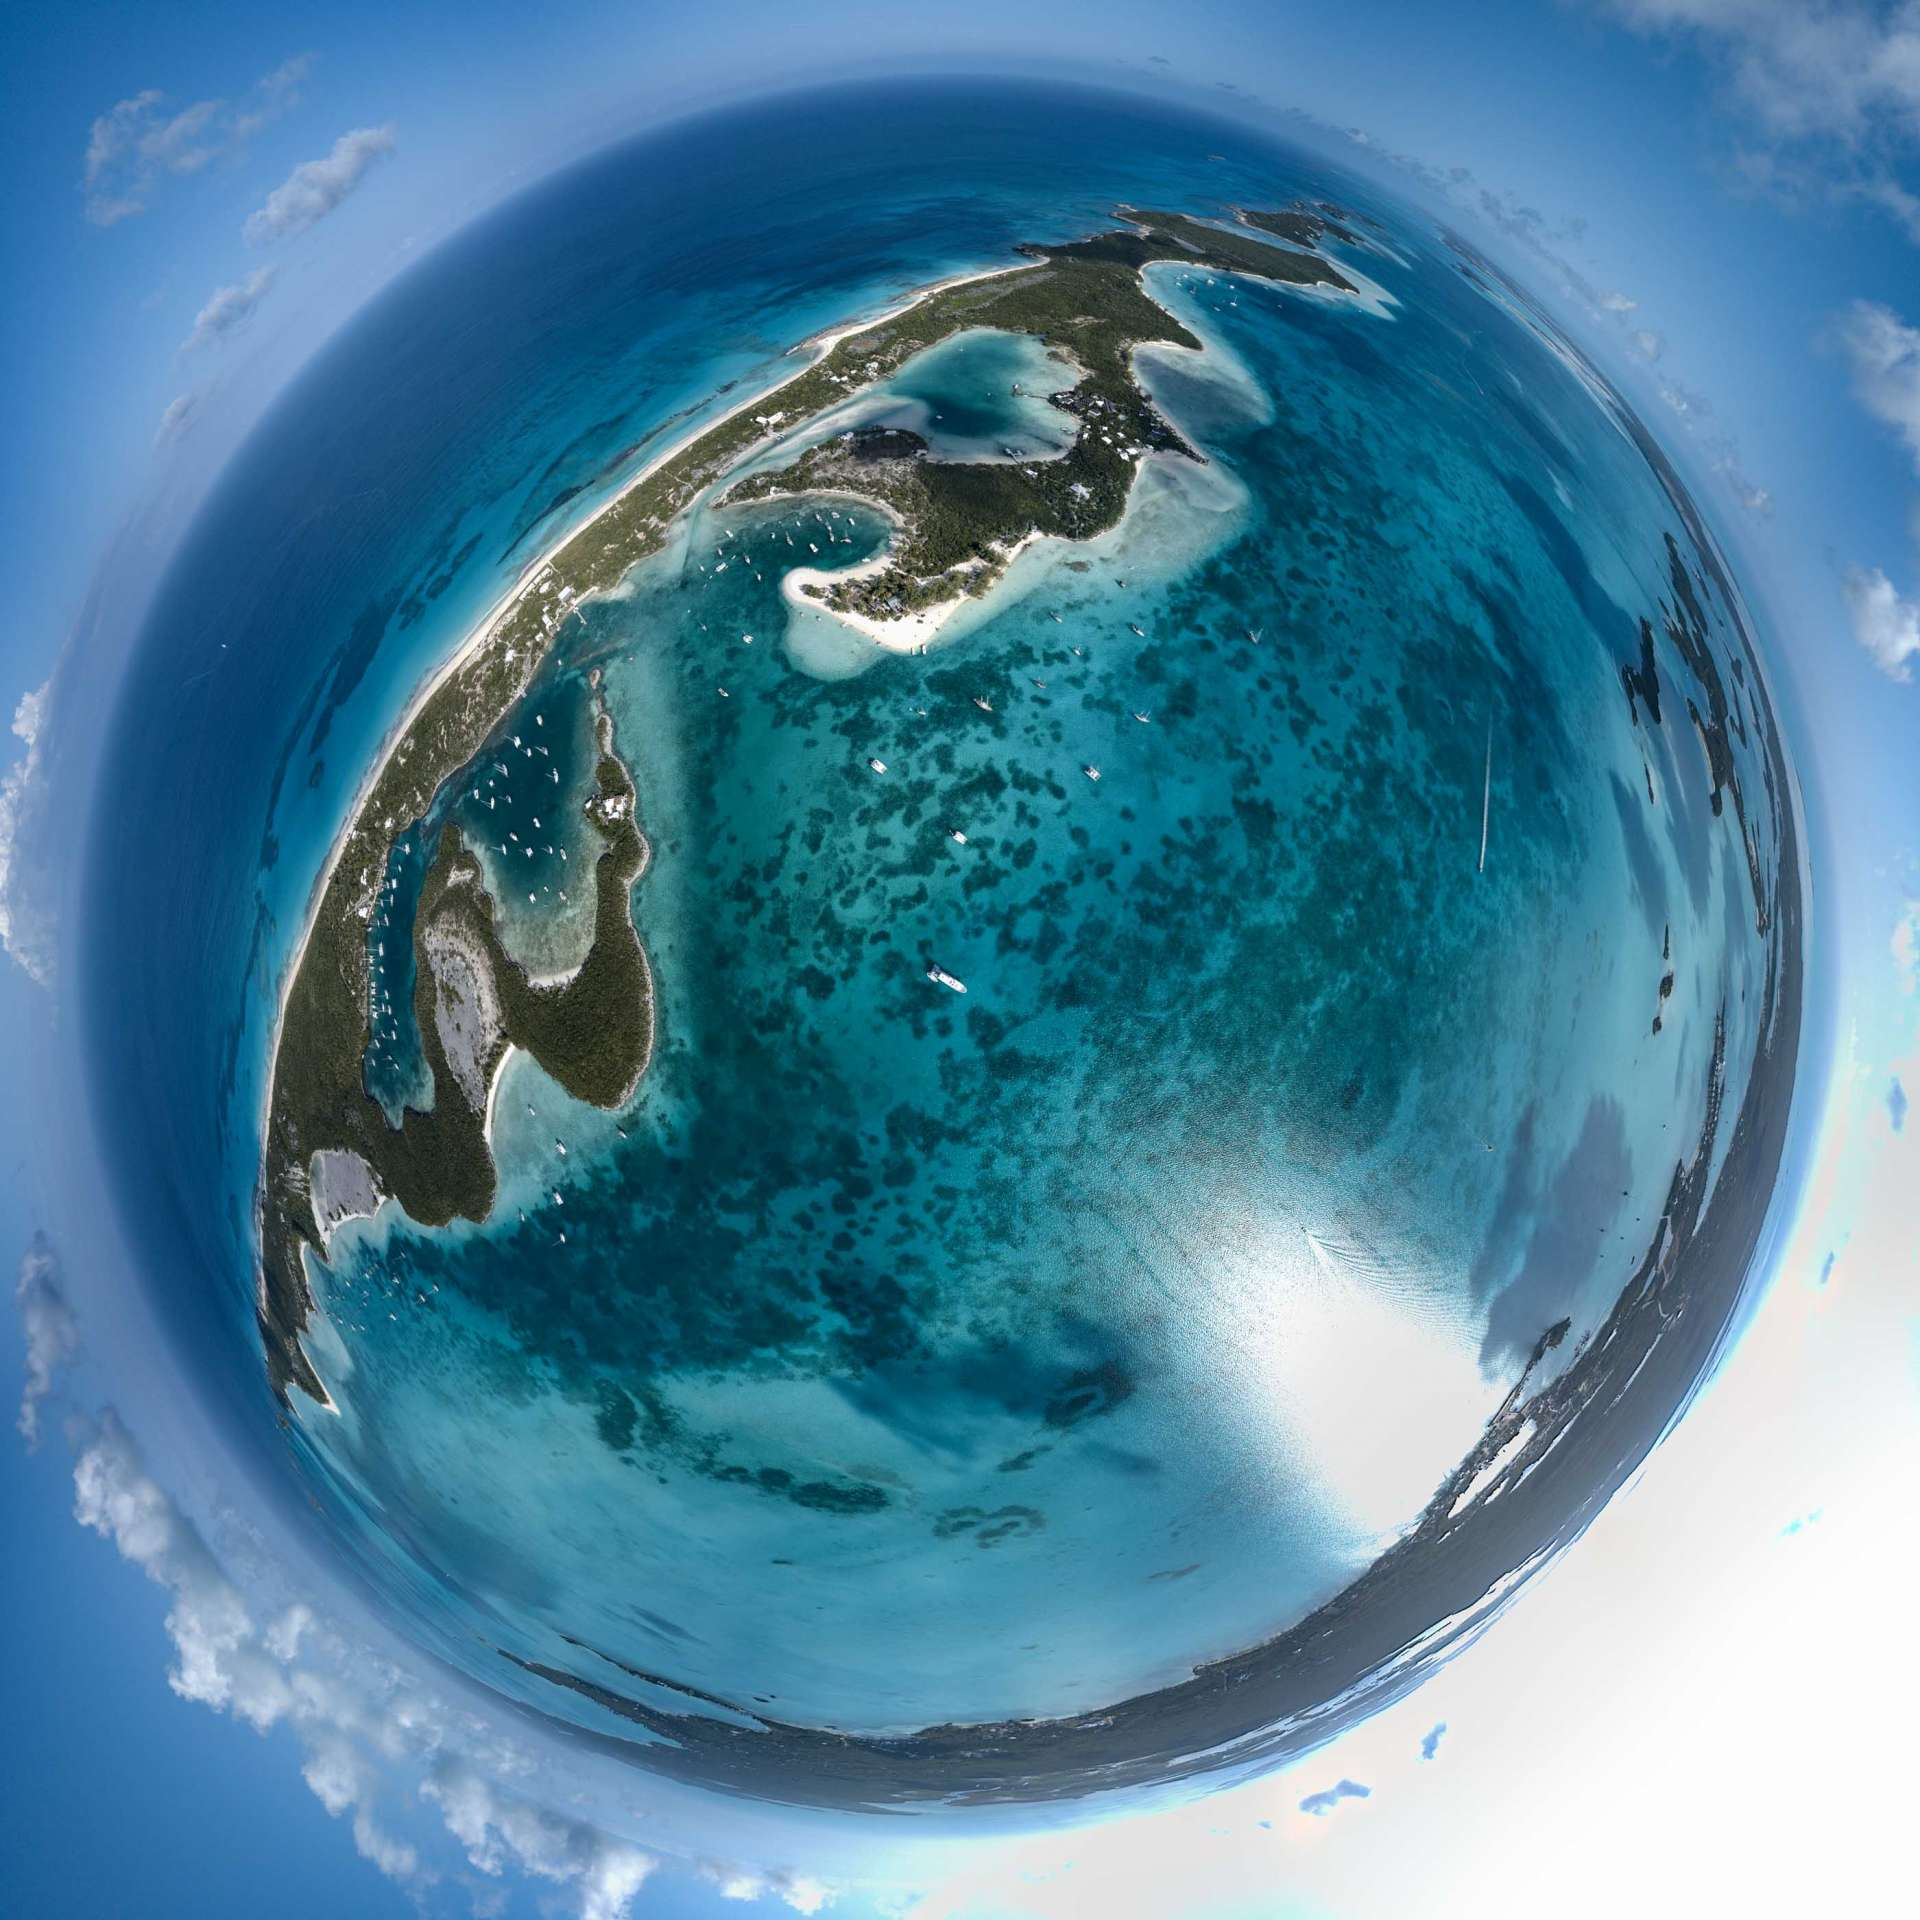 aerial view drone Chat N Chill Stocking Island Exuma Bahamas little planet